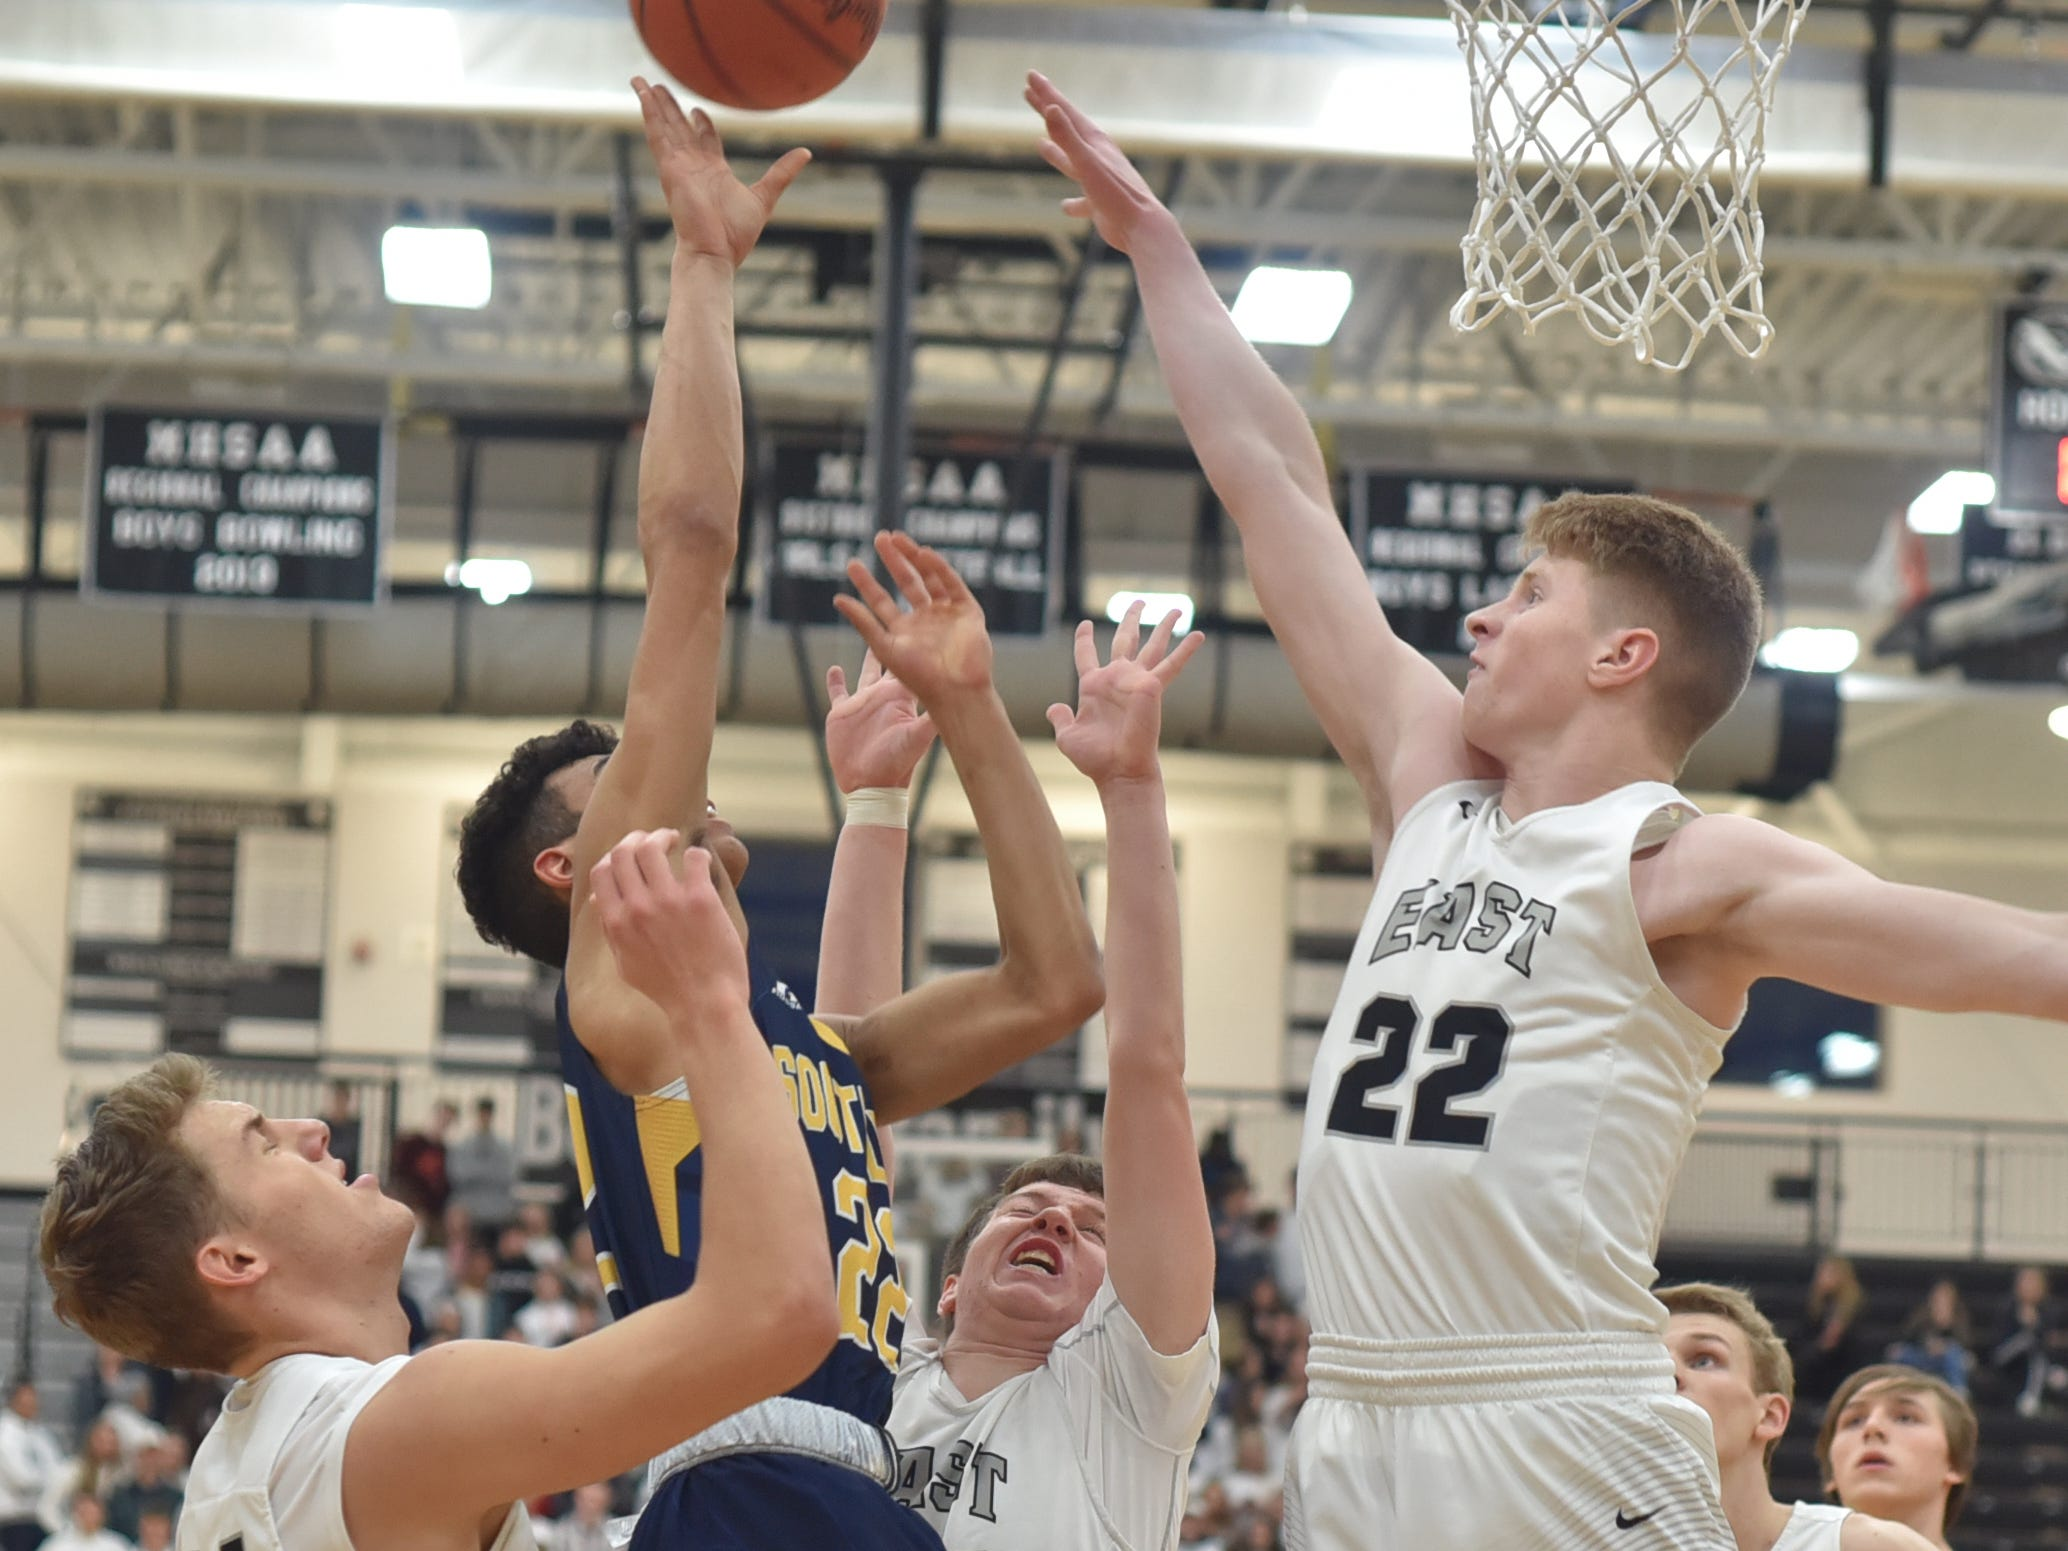 South Lyon Lion Lucas Doty runs into some issues near the basket including Cougars Chris Kaminski, left, and Drake Willlenborg, right.